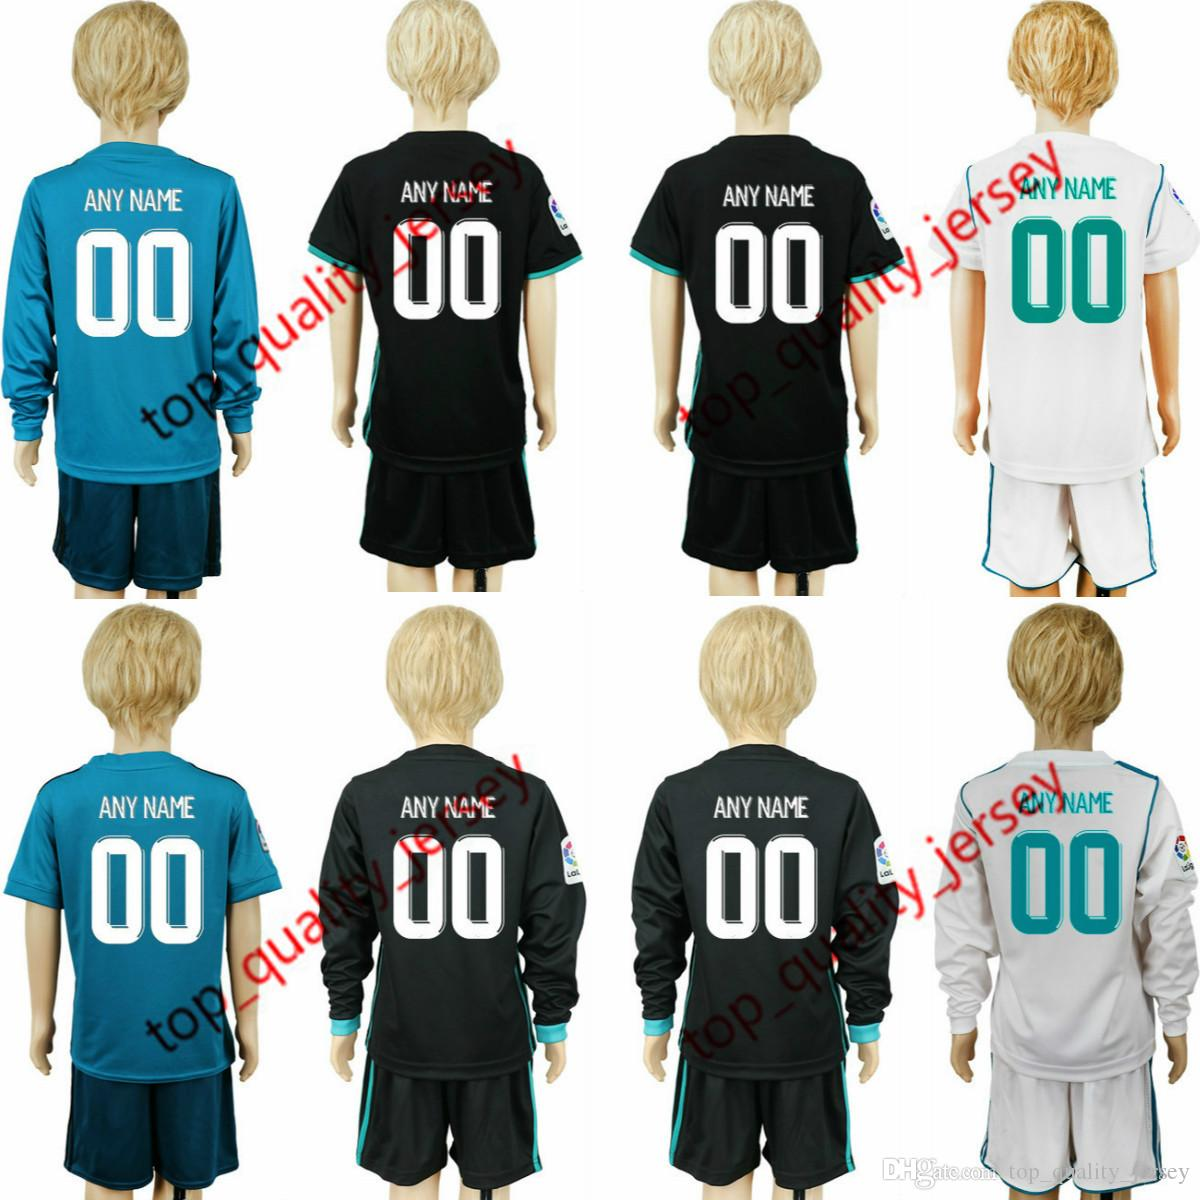 0e03f0cc1 2019 2018 Custom Kids Soccer Sets Real Madrid Jersey 2017 18 Home White  Away Black Blue Ronaldo ASENSIO ISCO Child Boys Youth Soccer Shirts From ...